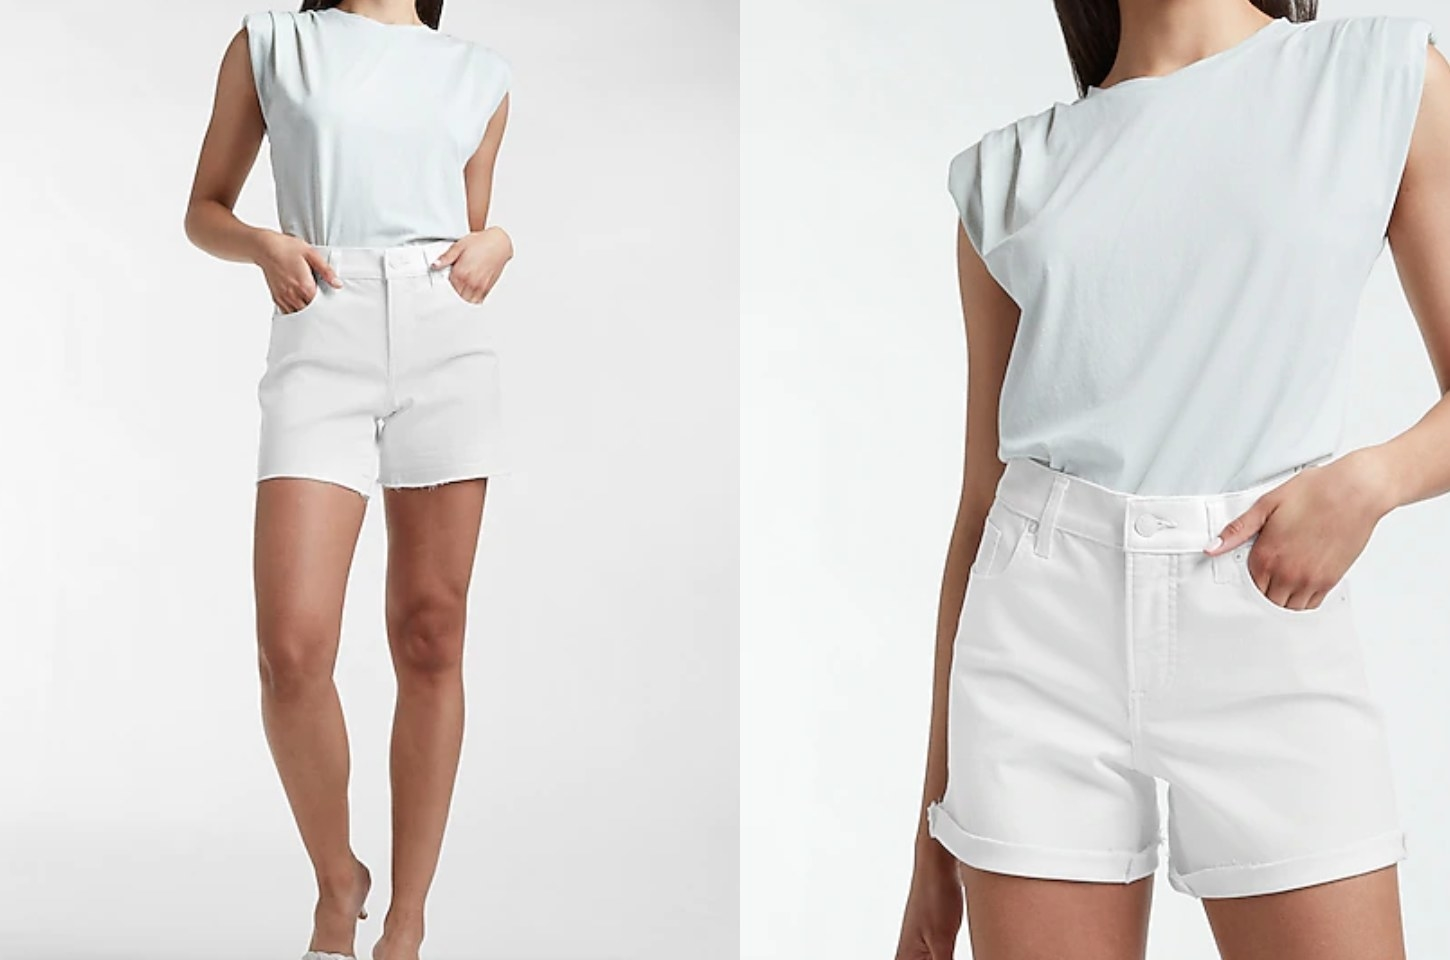 on the left, model wearing the shorts uncuffed. on the right, model wearing the shorts cuffed